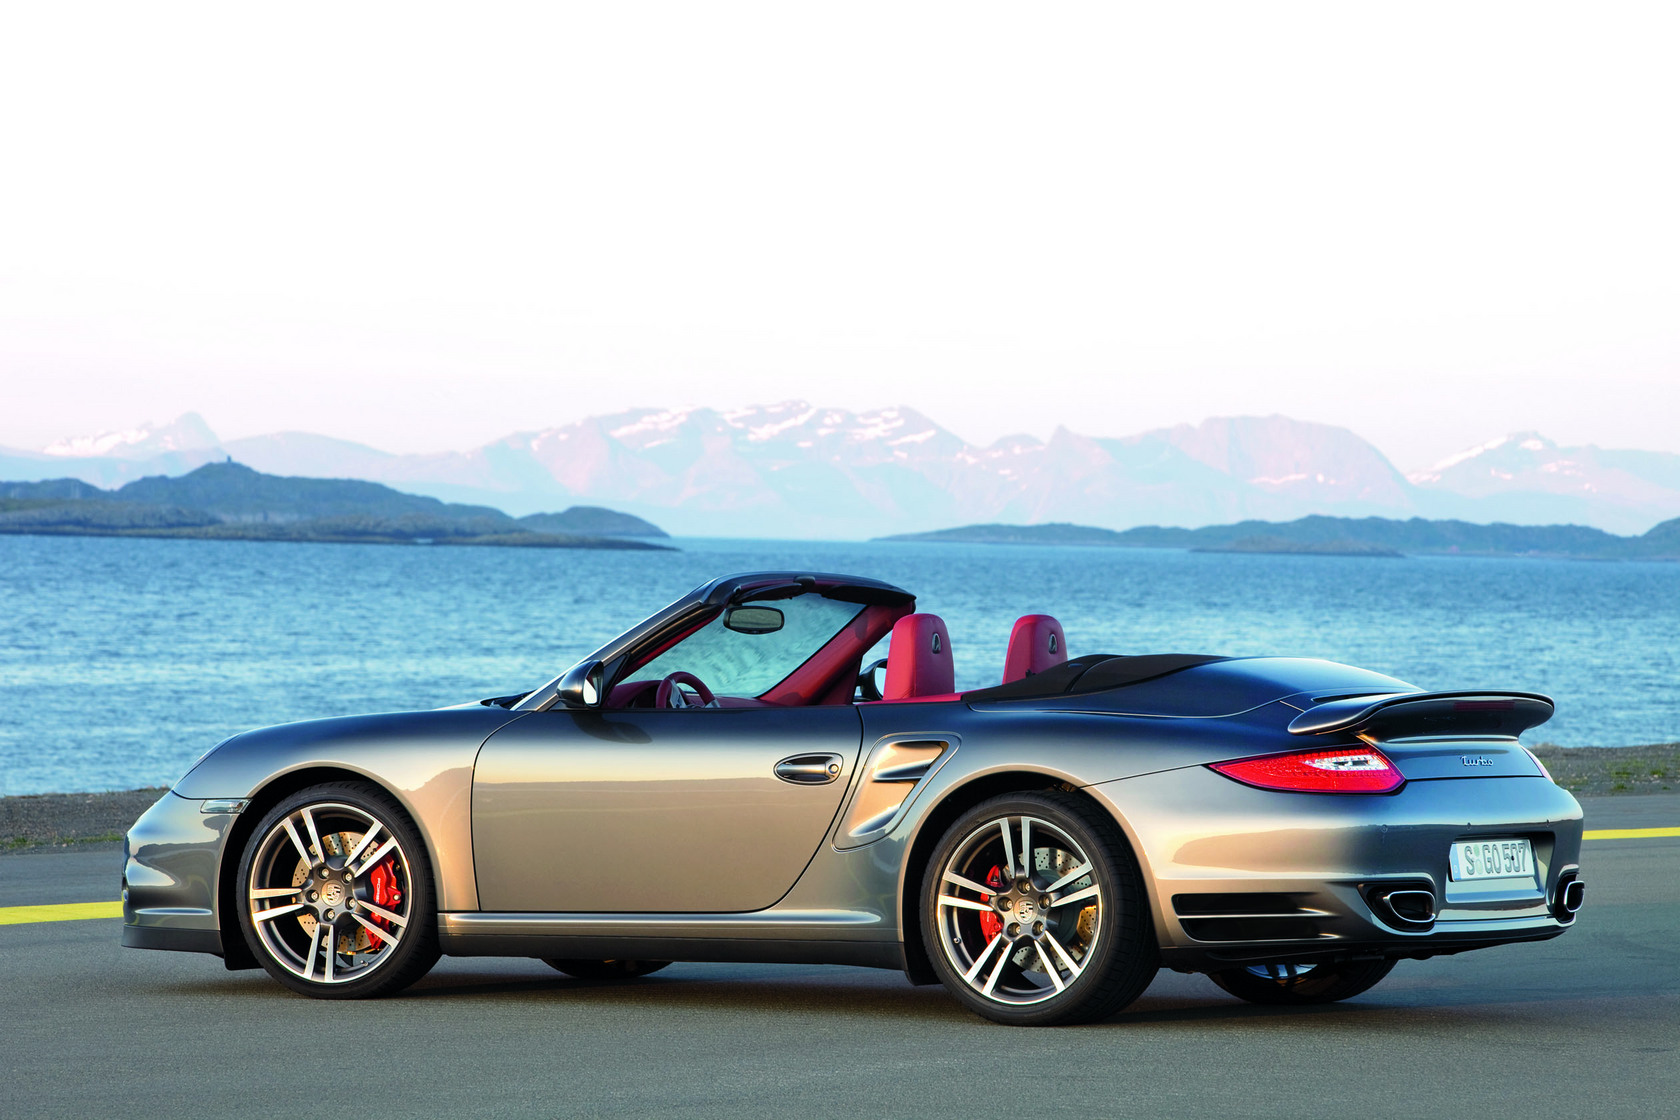 porsche 911 turbo cabrio 2009 auto wallpapers. Black Bedroom Furniture Sets. Home Design Ideas